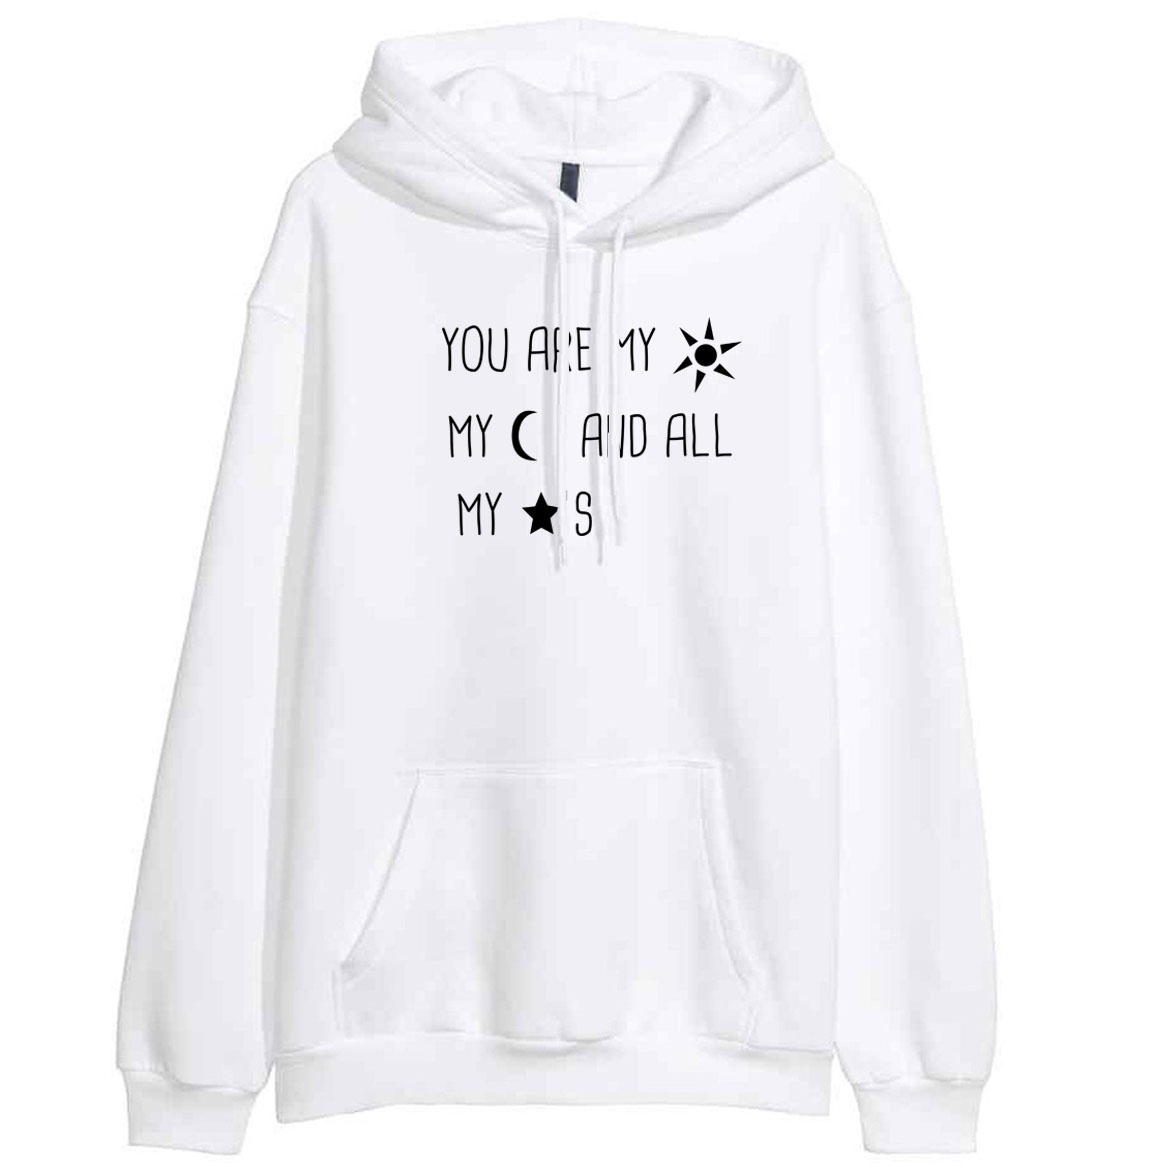 You Are My Sun My Moon And All My Stars Letter Print Hot 2019 Spring Winter Sweatshirt For Women Hoody Fleece Sportswear Kawaii